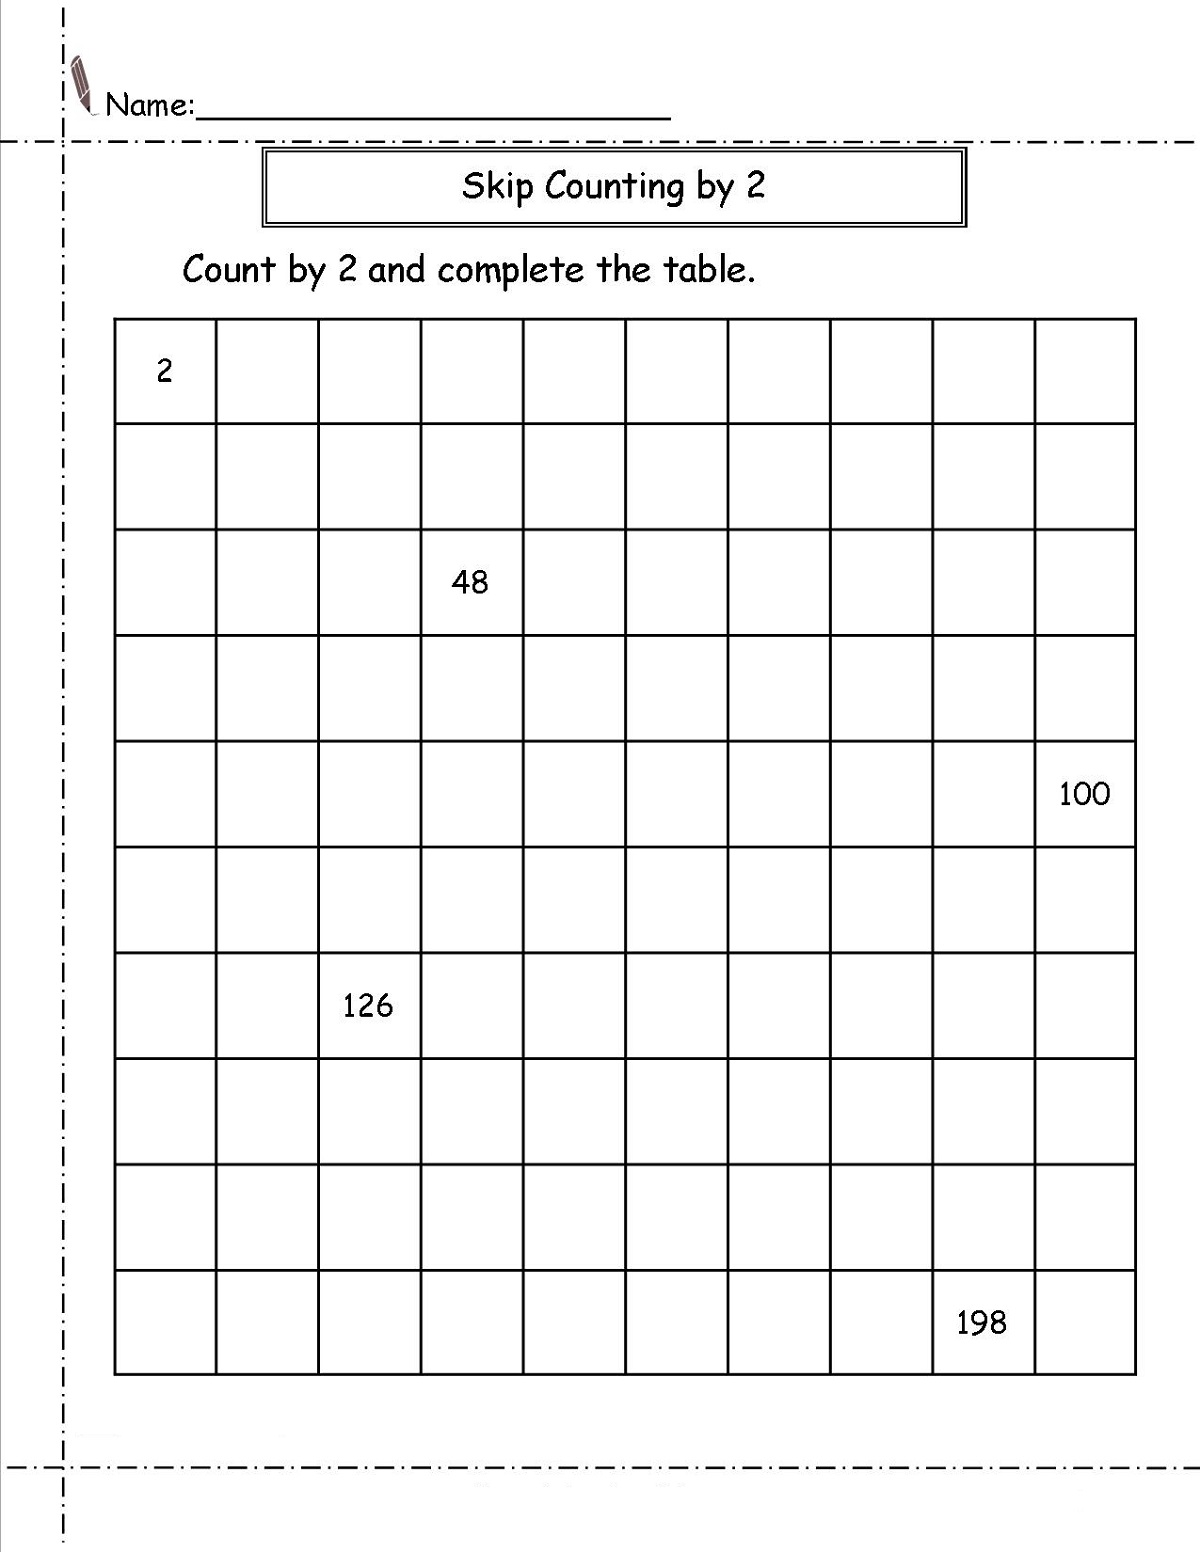 skip-count-by-2-worksheet-easy